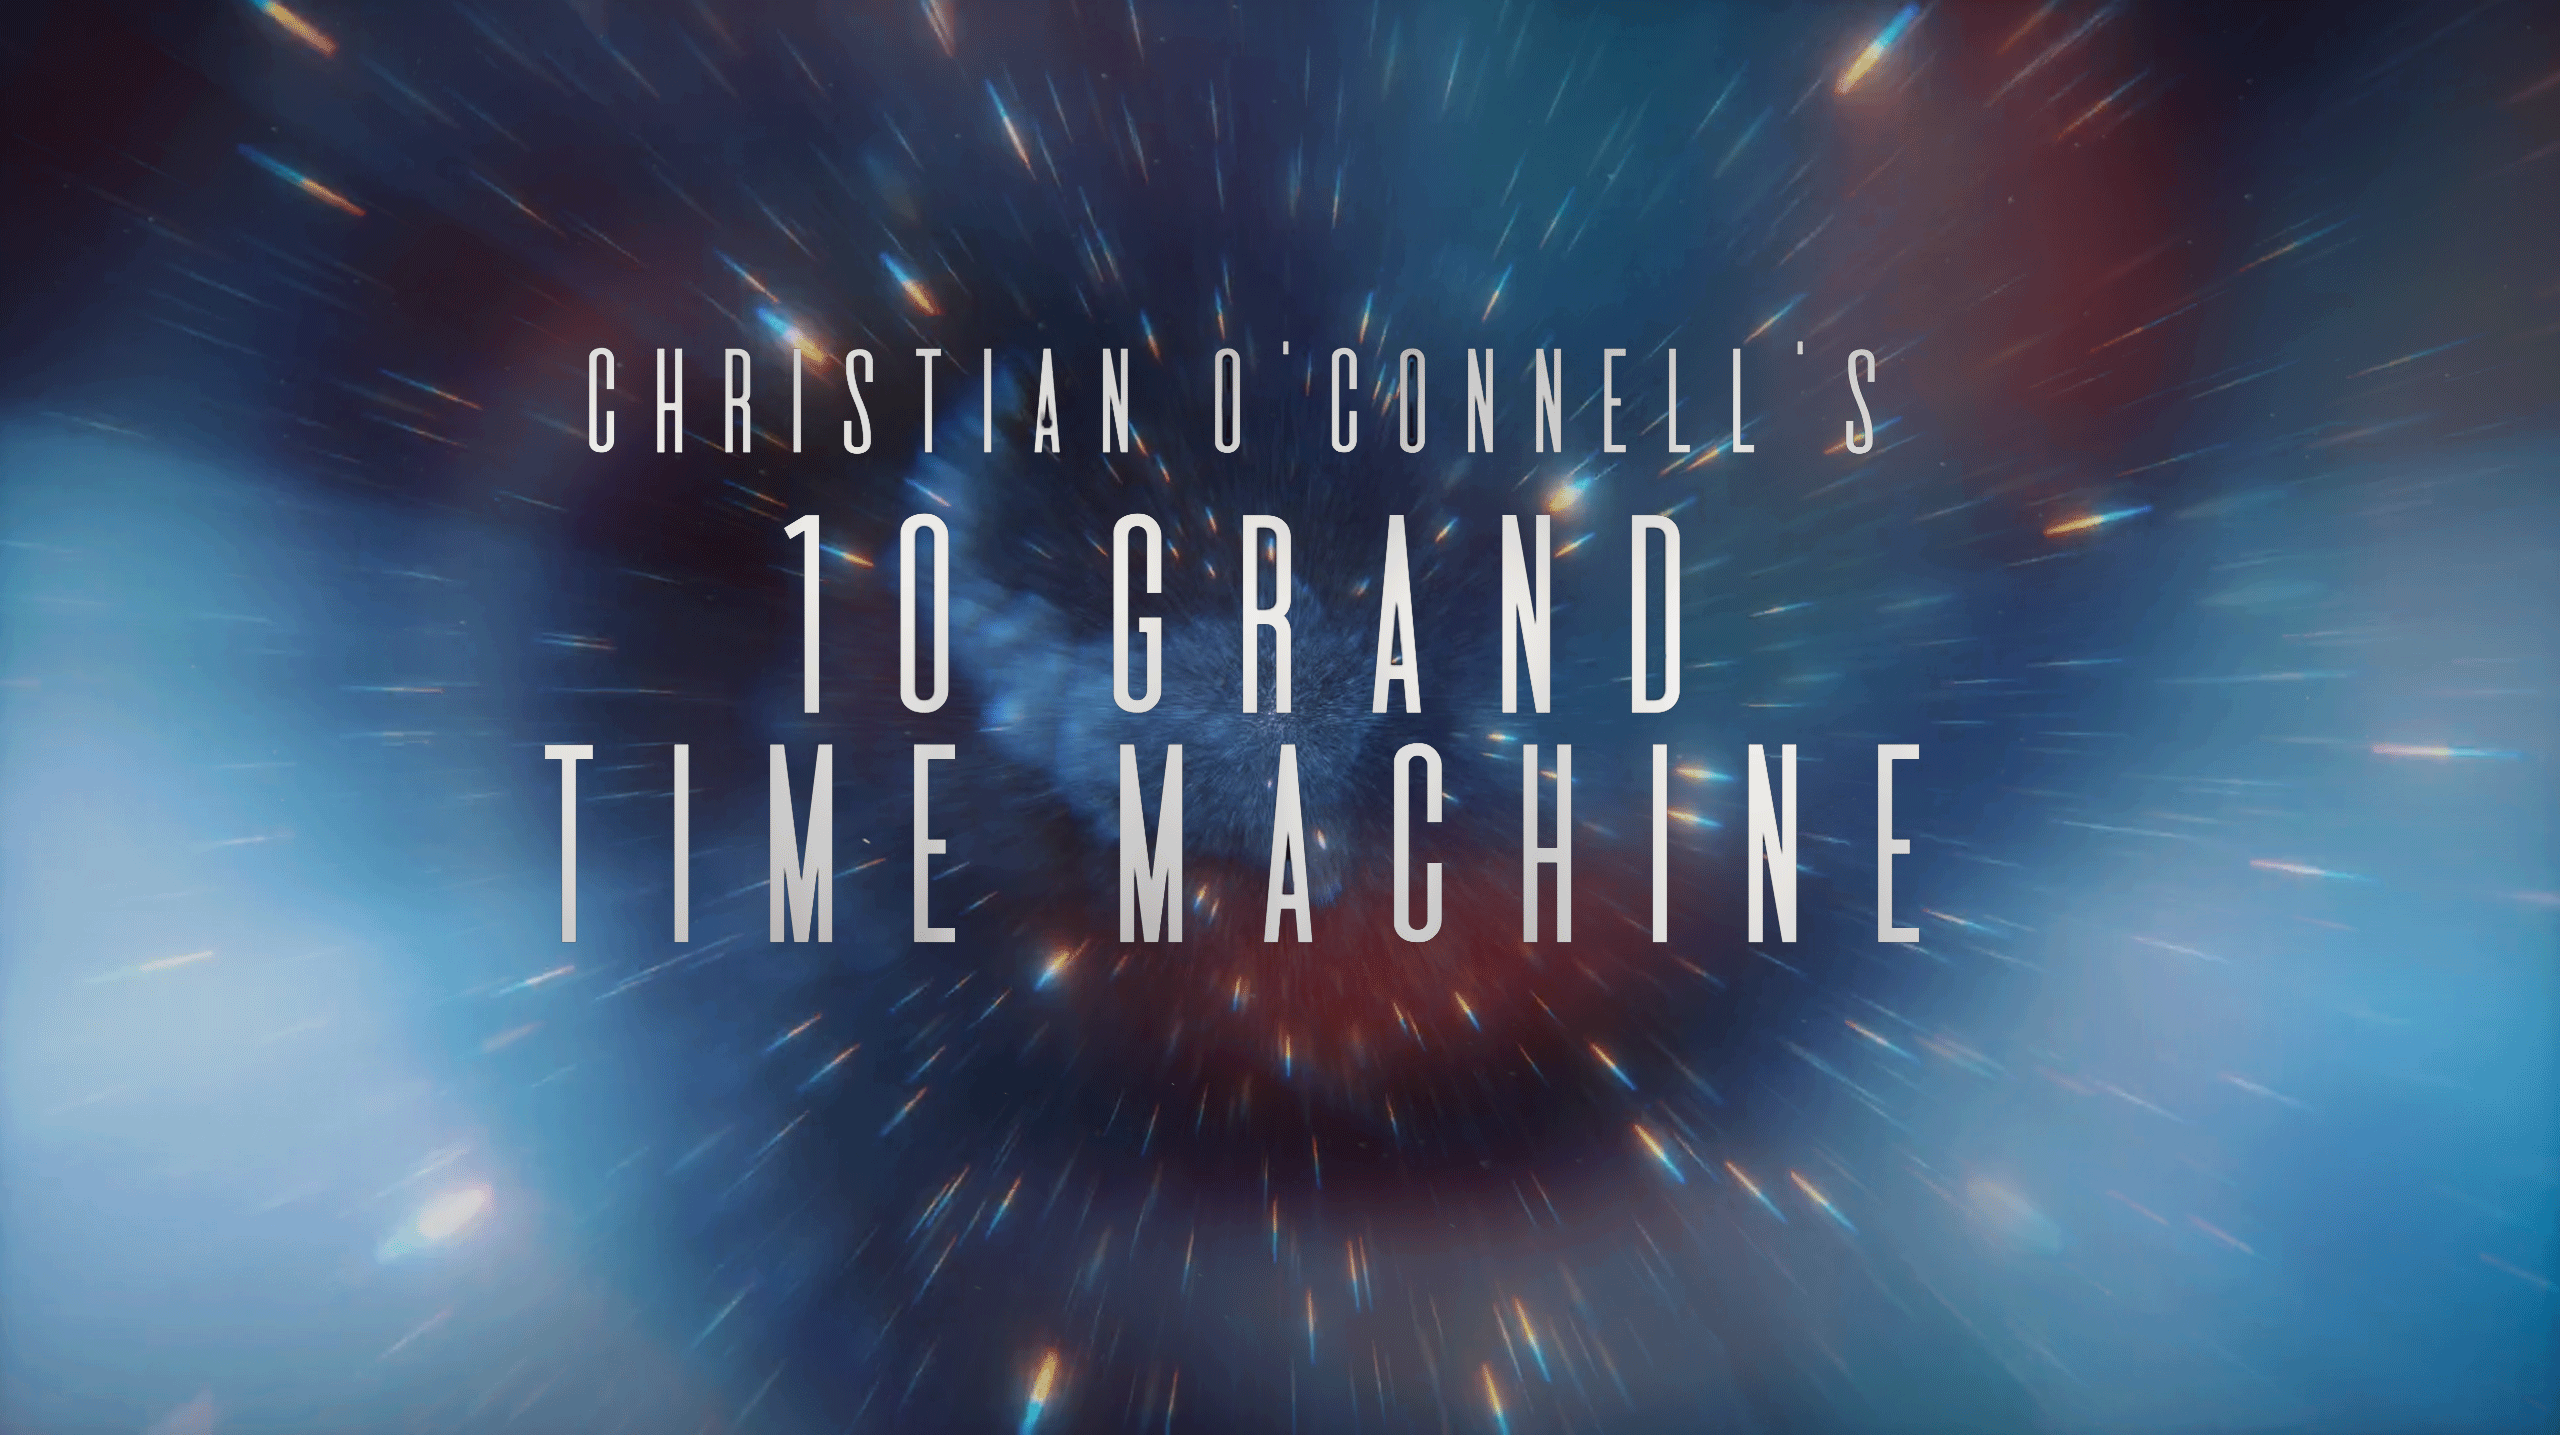 Christian O'Connell's 10 Grand Time Machine